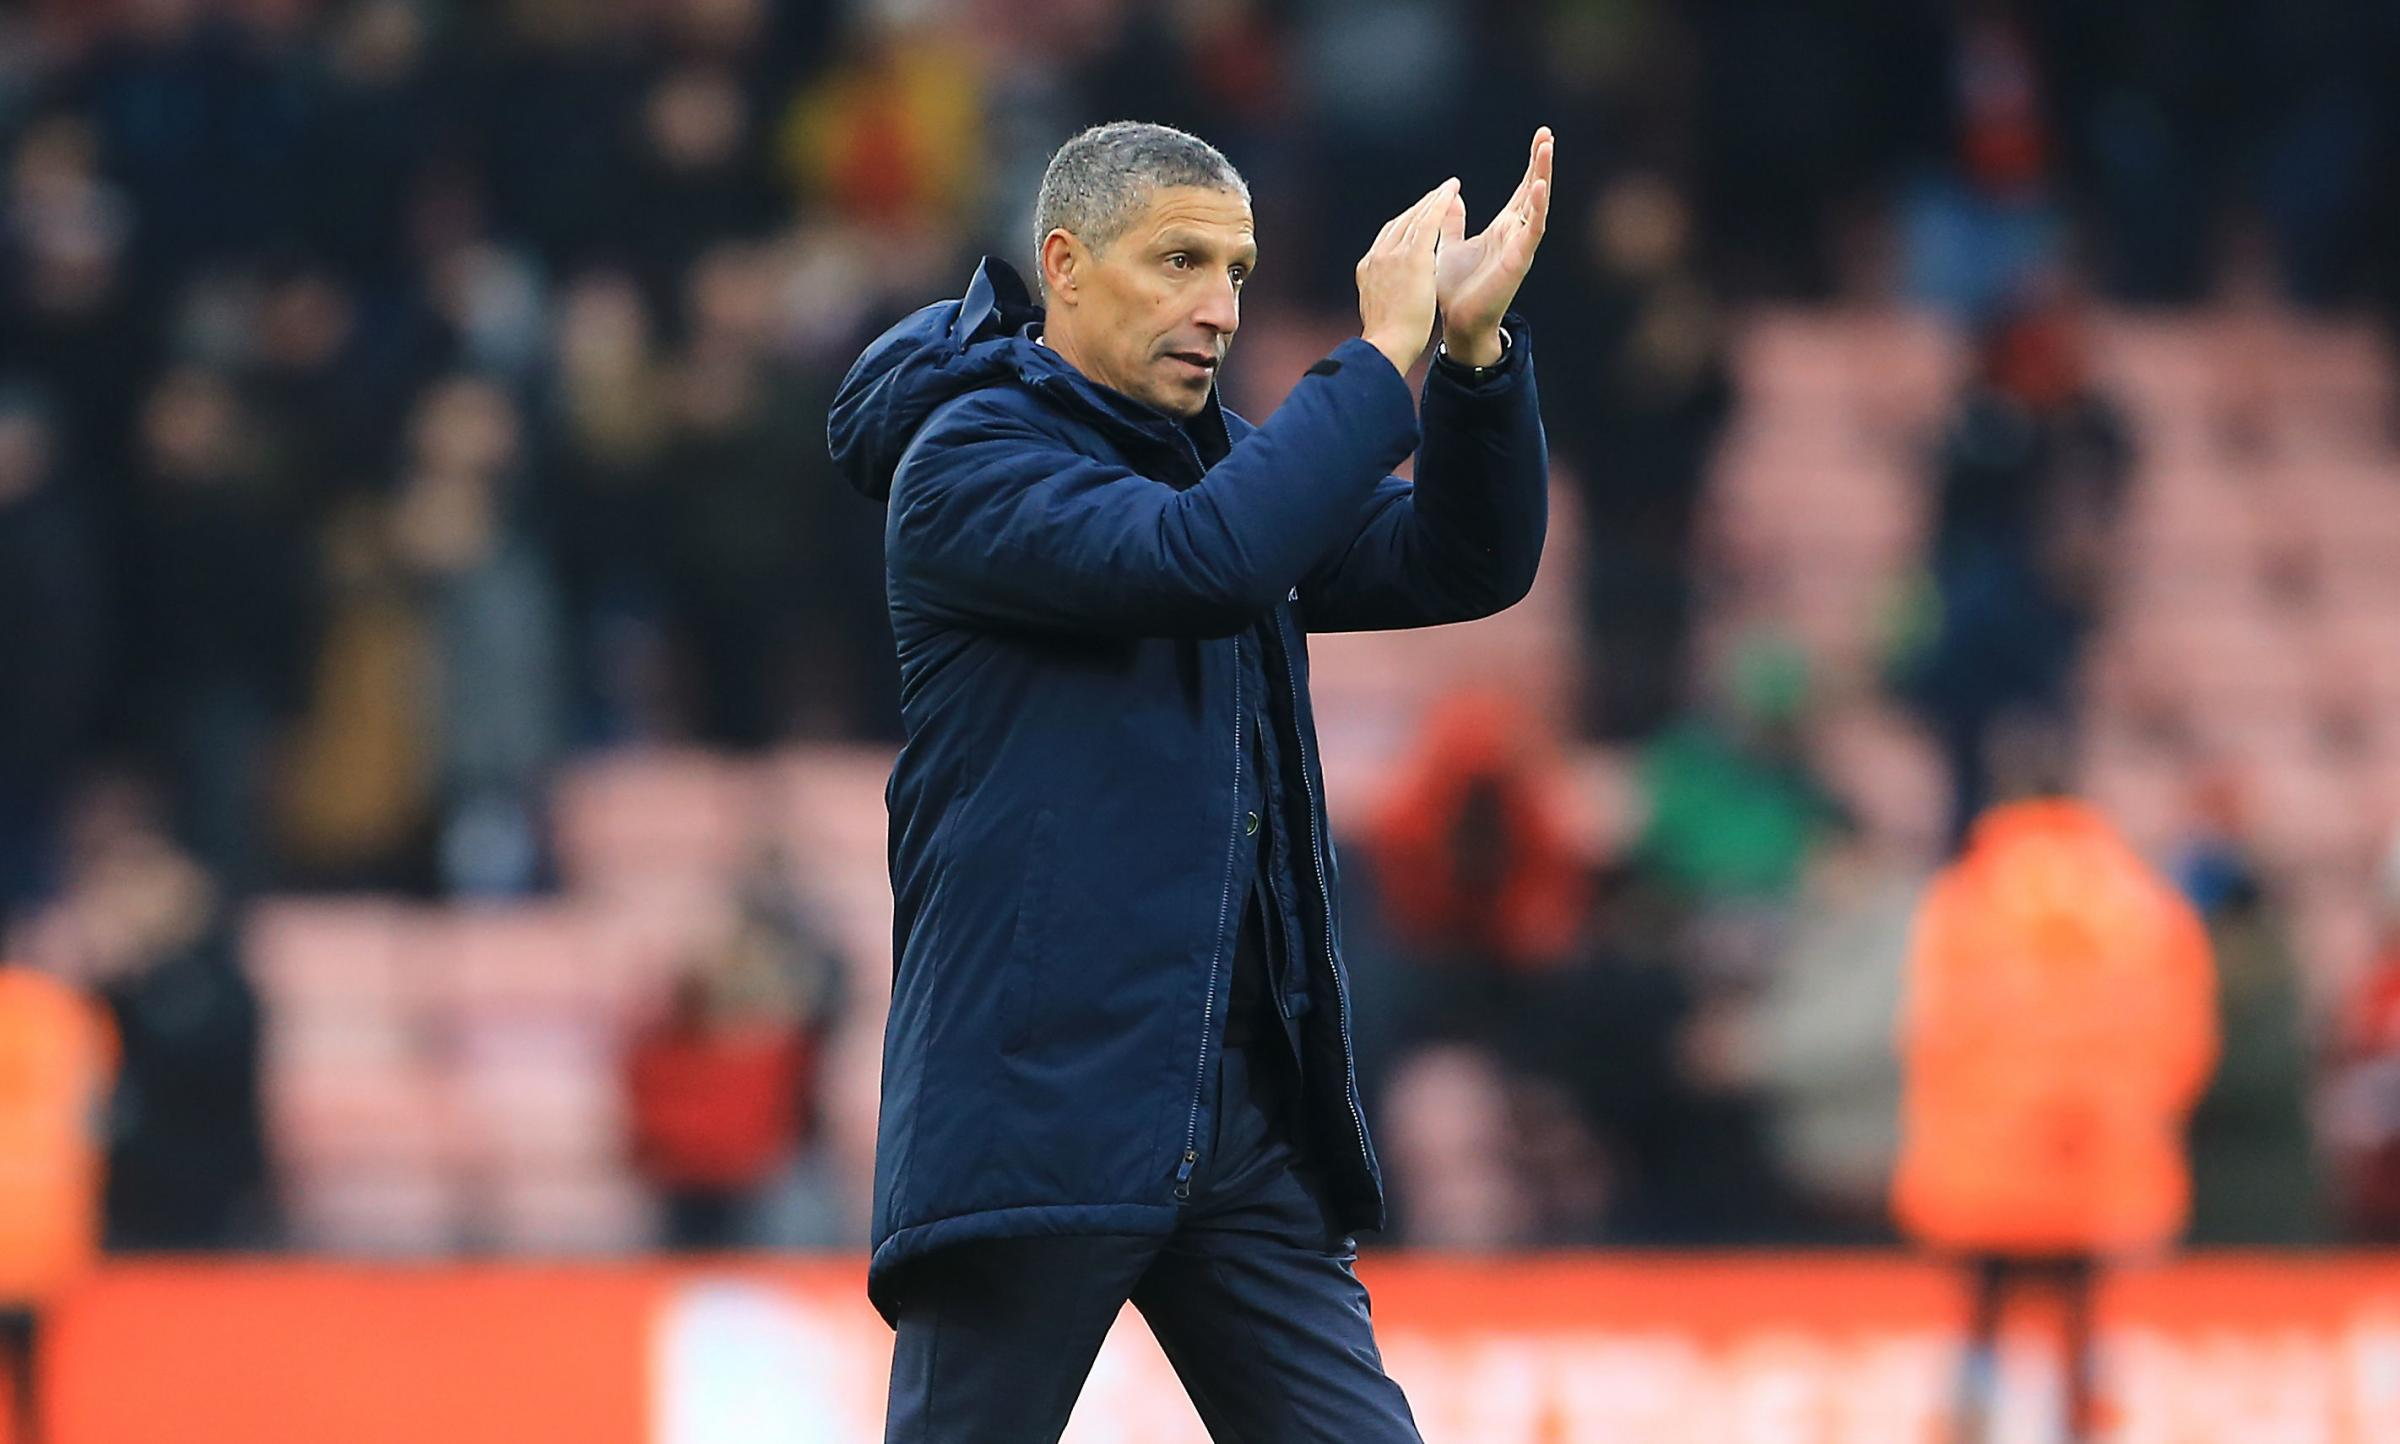 Brighton & Hove Albion manager Chris Hughton applauds the fans after the final whistle during the Emirates FA Cup, third round match at the Vitality Stadium, Bournemouth. PRESS ASSOCIATION Photo. Picture date: Saturday January 5, 2019. See PA story SO